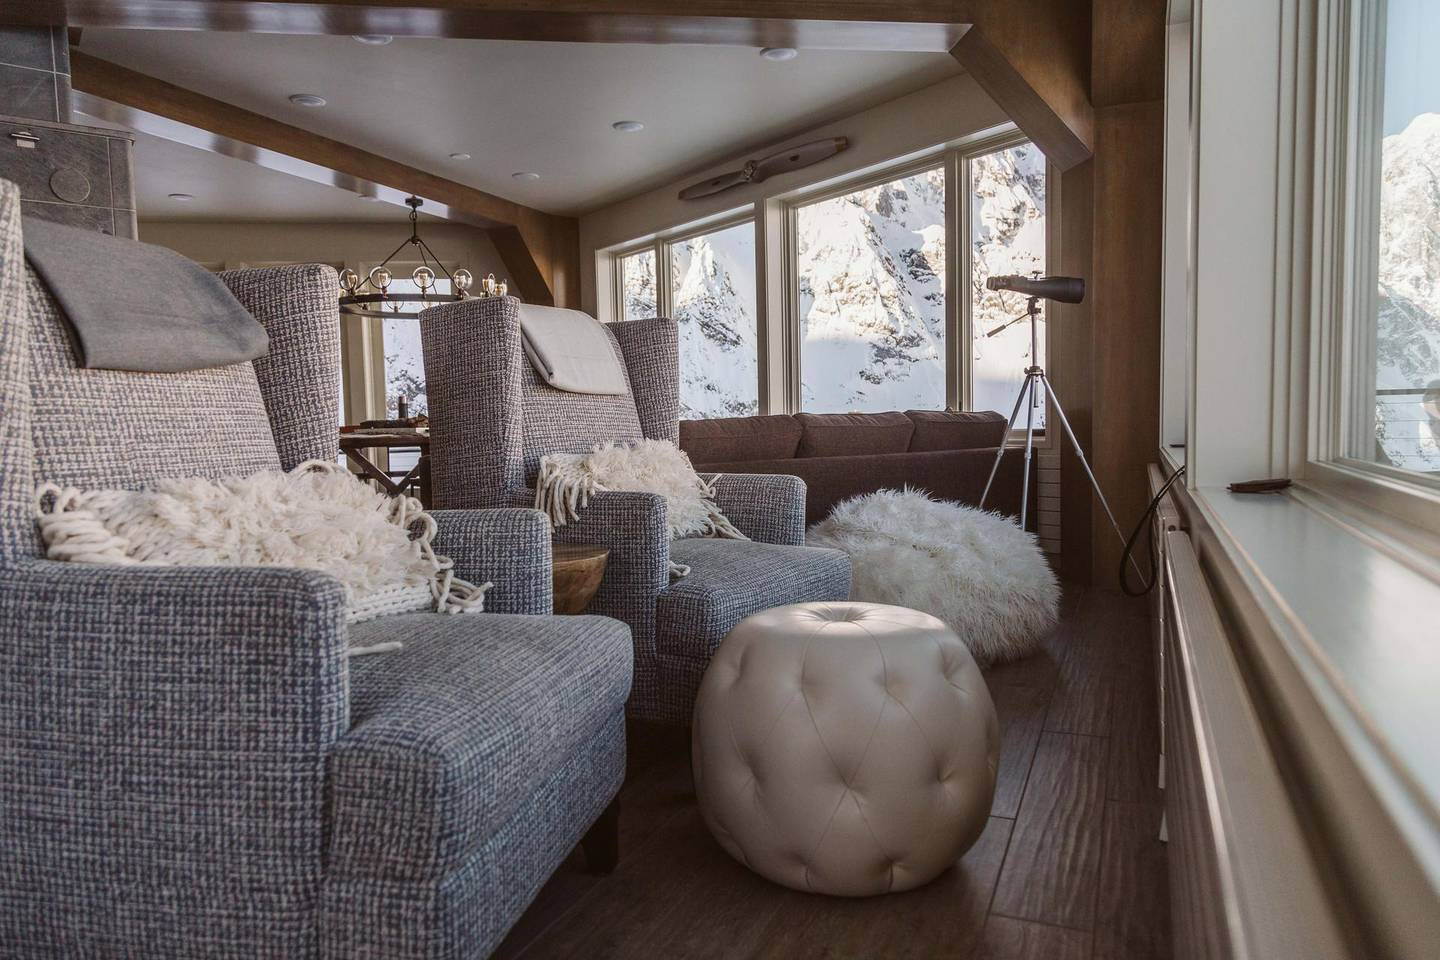 Interior of Sheldon Chalet. Photo by Totem Ent